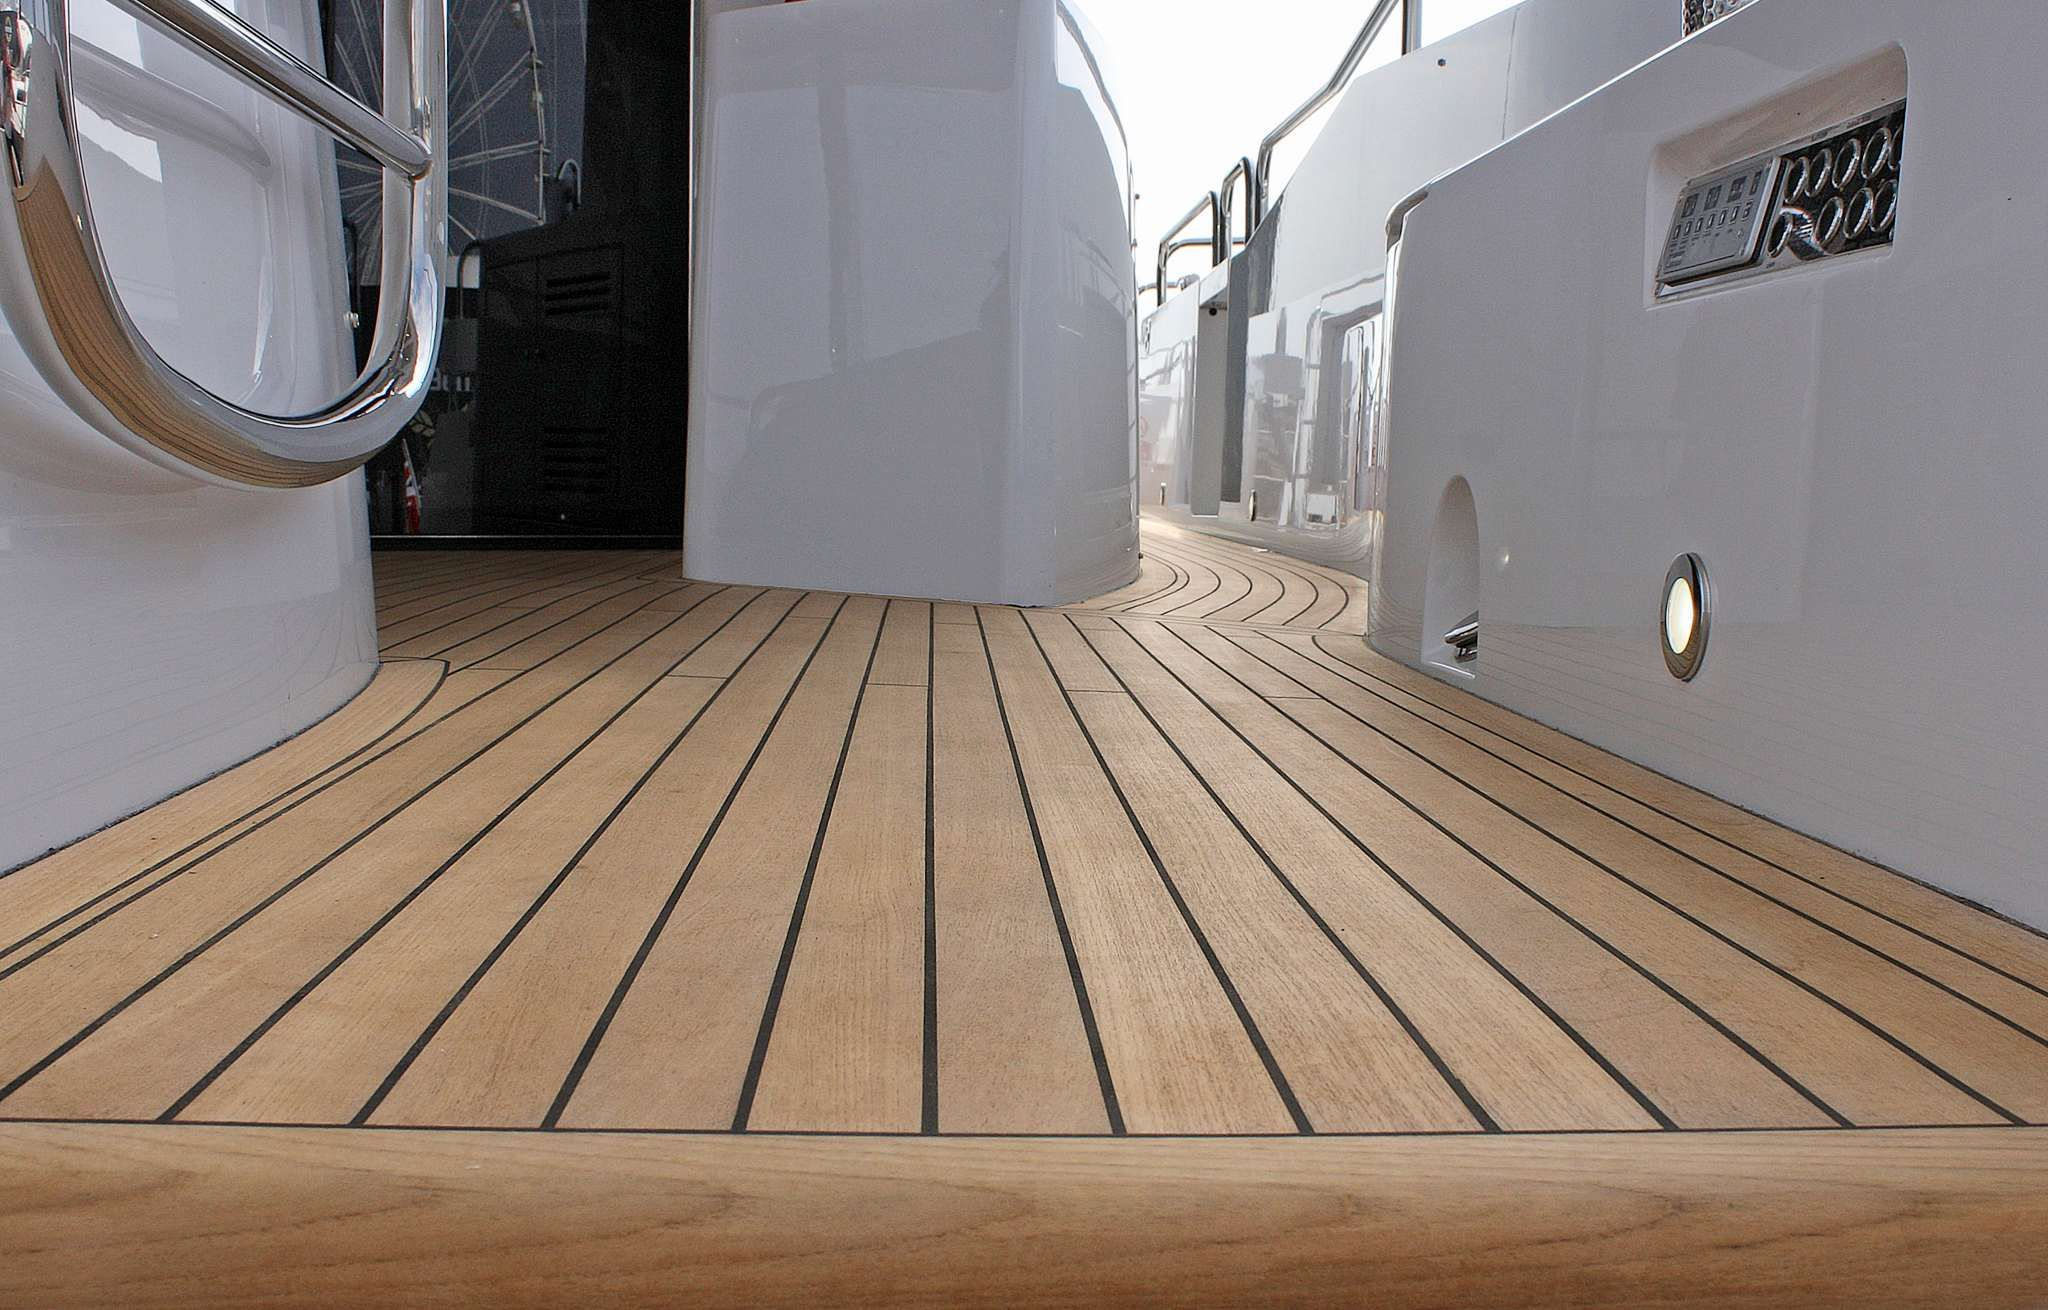 gallery deep new floor machine dealers wt and v fm boats boat marine deck fishing aluminum lowe s vinyl flooring pro